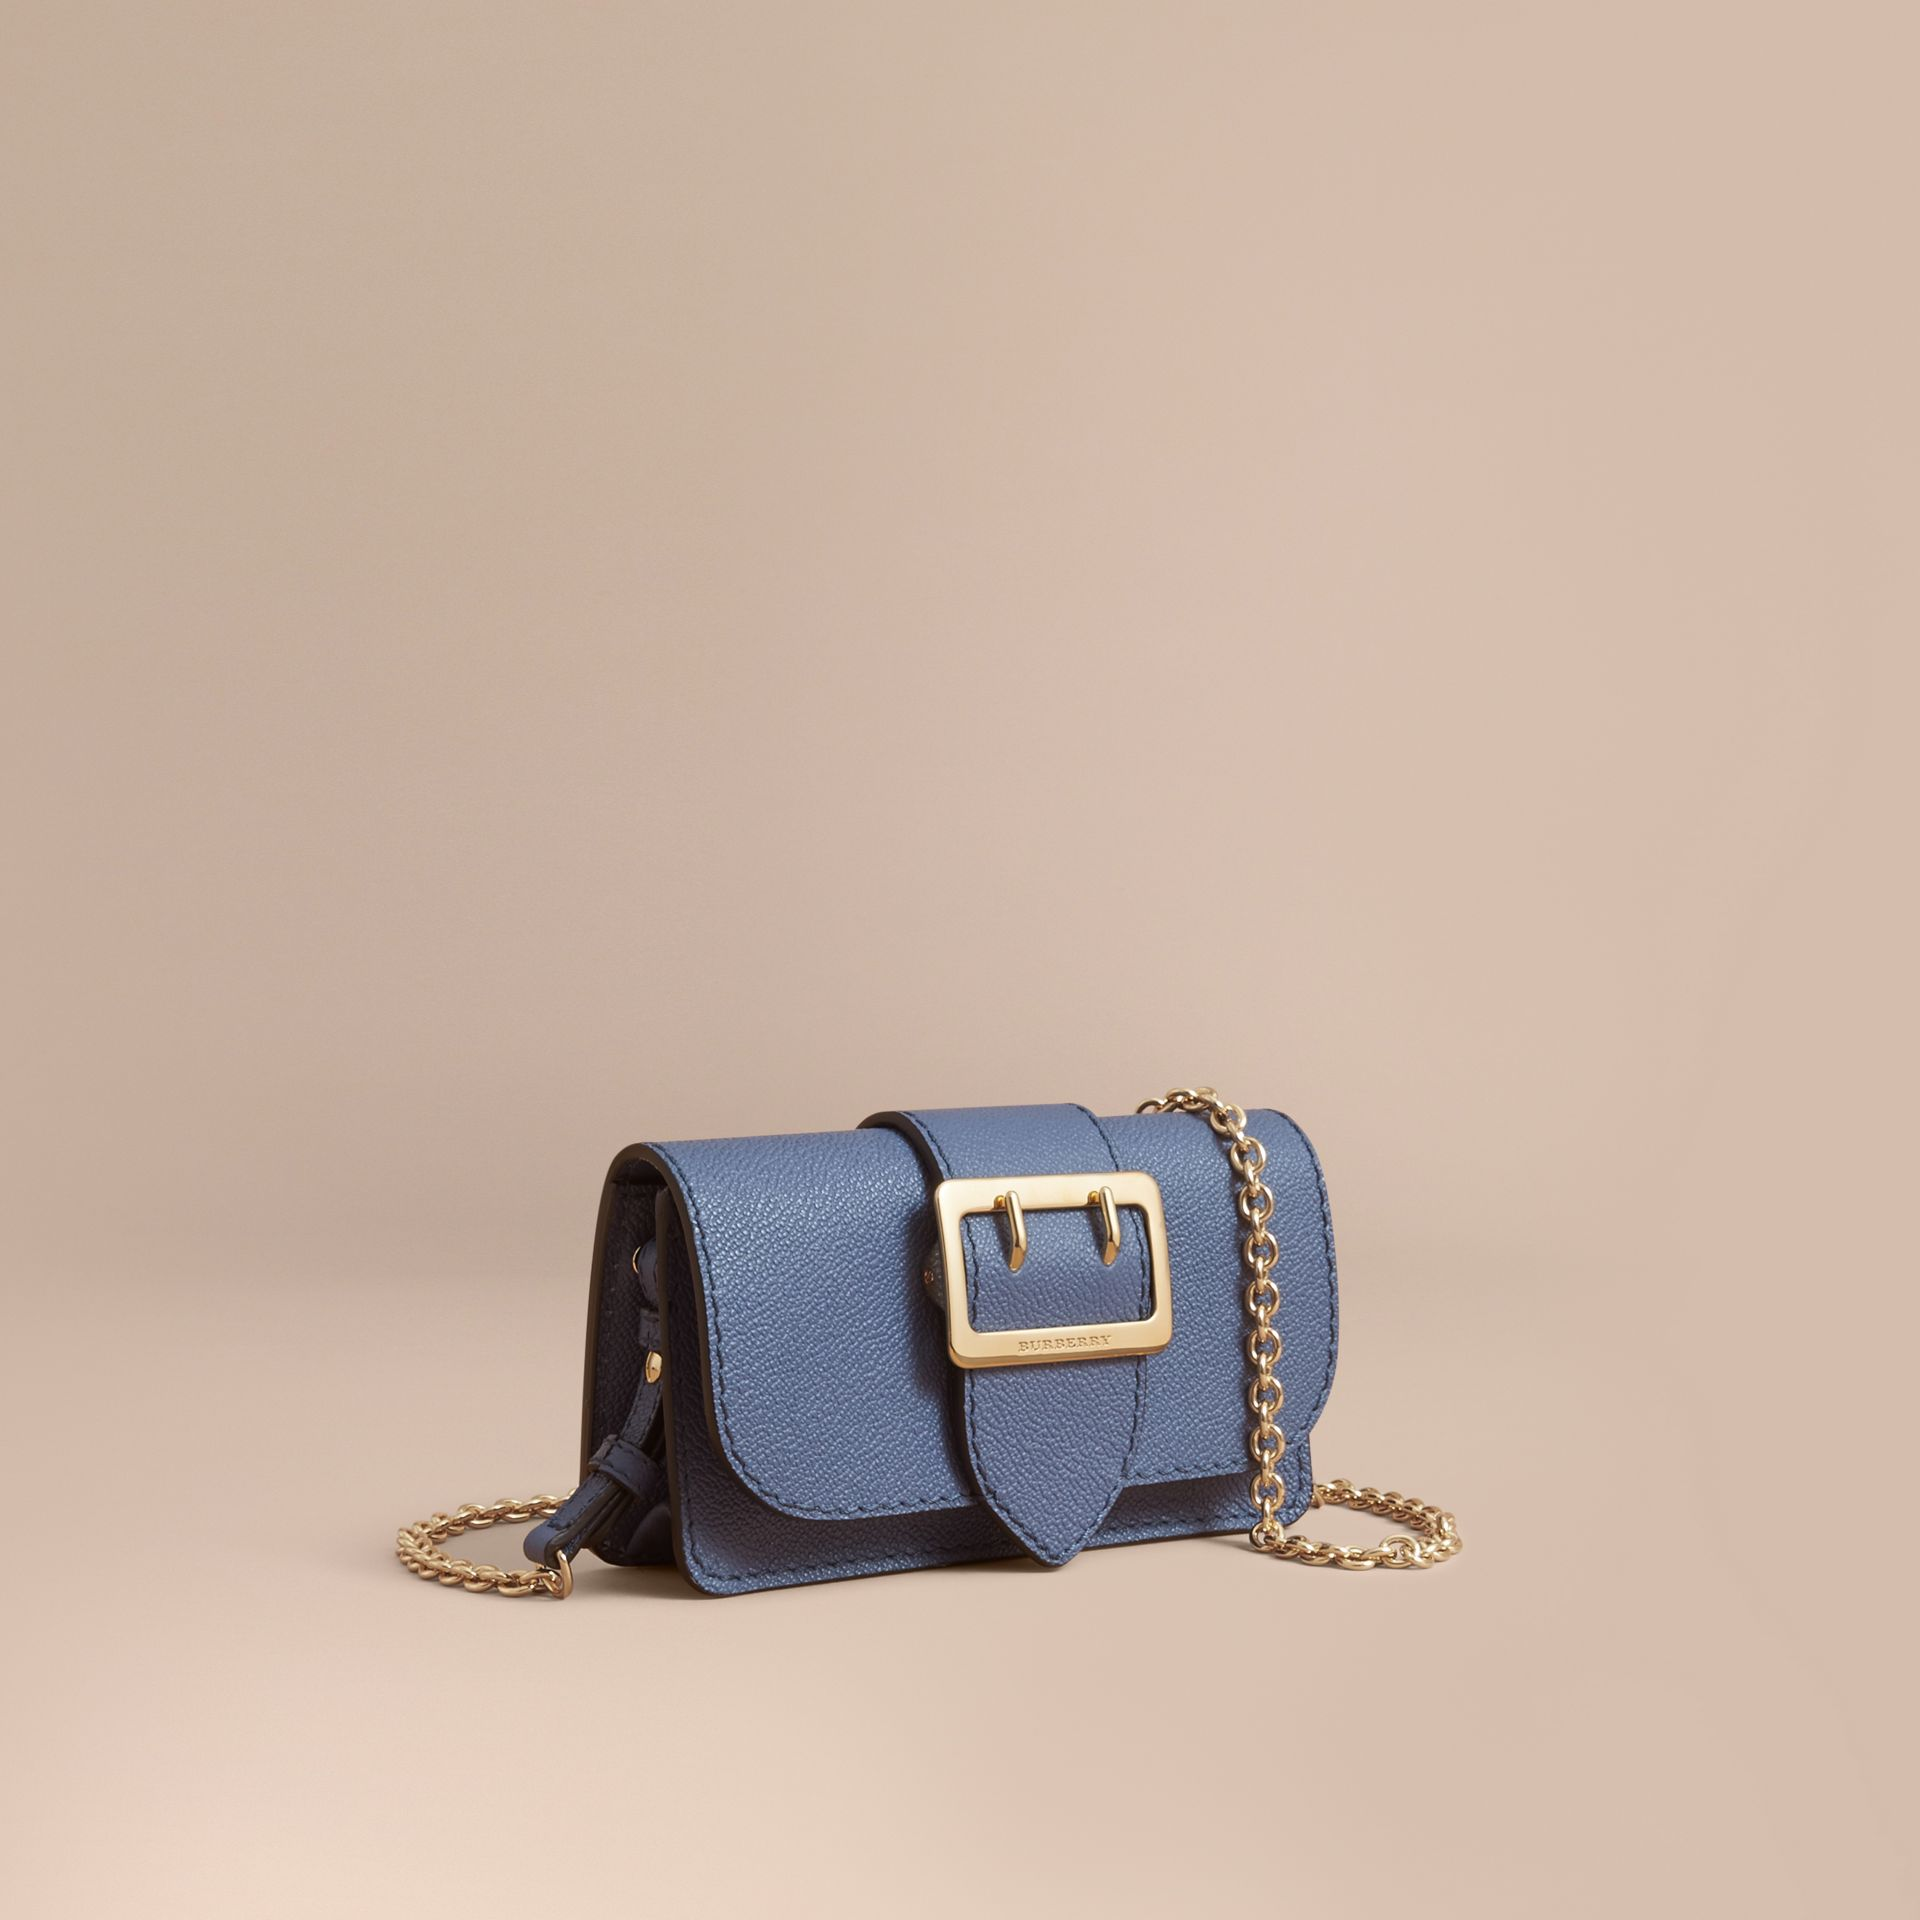 Mini sac The Buckle en cuir grainé (Bleu Acier) - Femme | Burberry - photo de la galerie 1